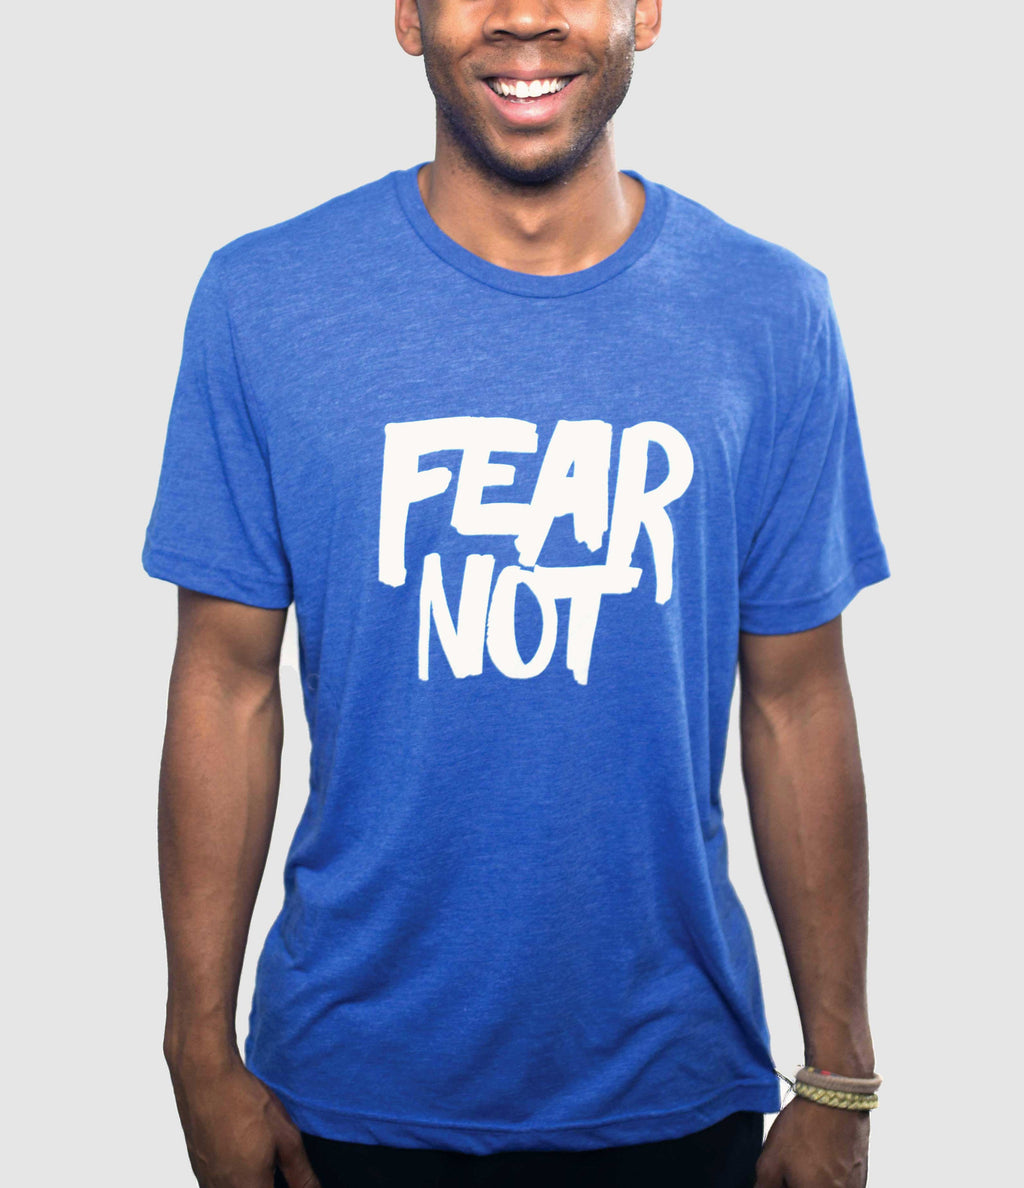 FEAR NOT ROYAL BLUE T-SHIRT